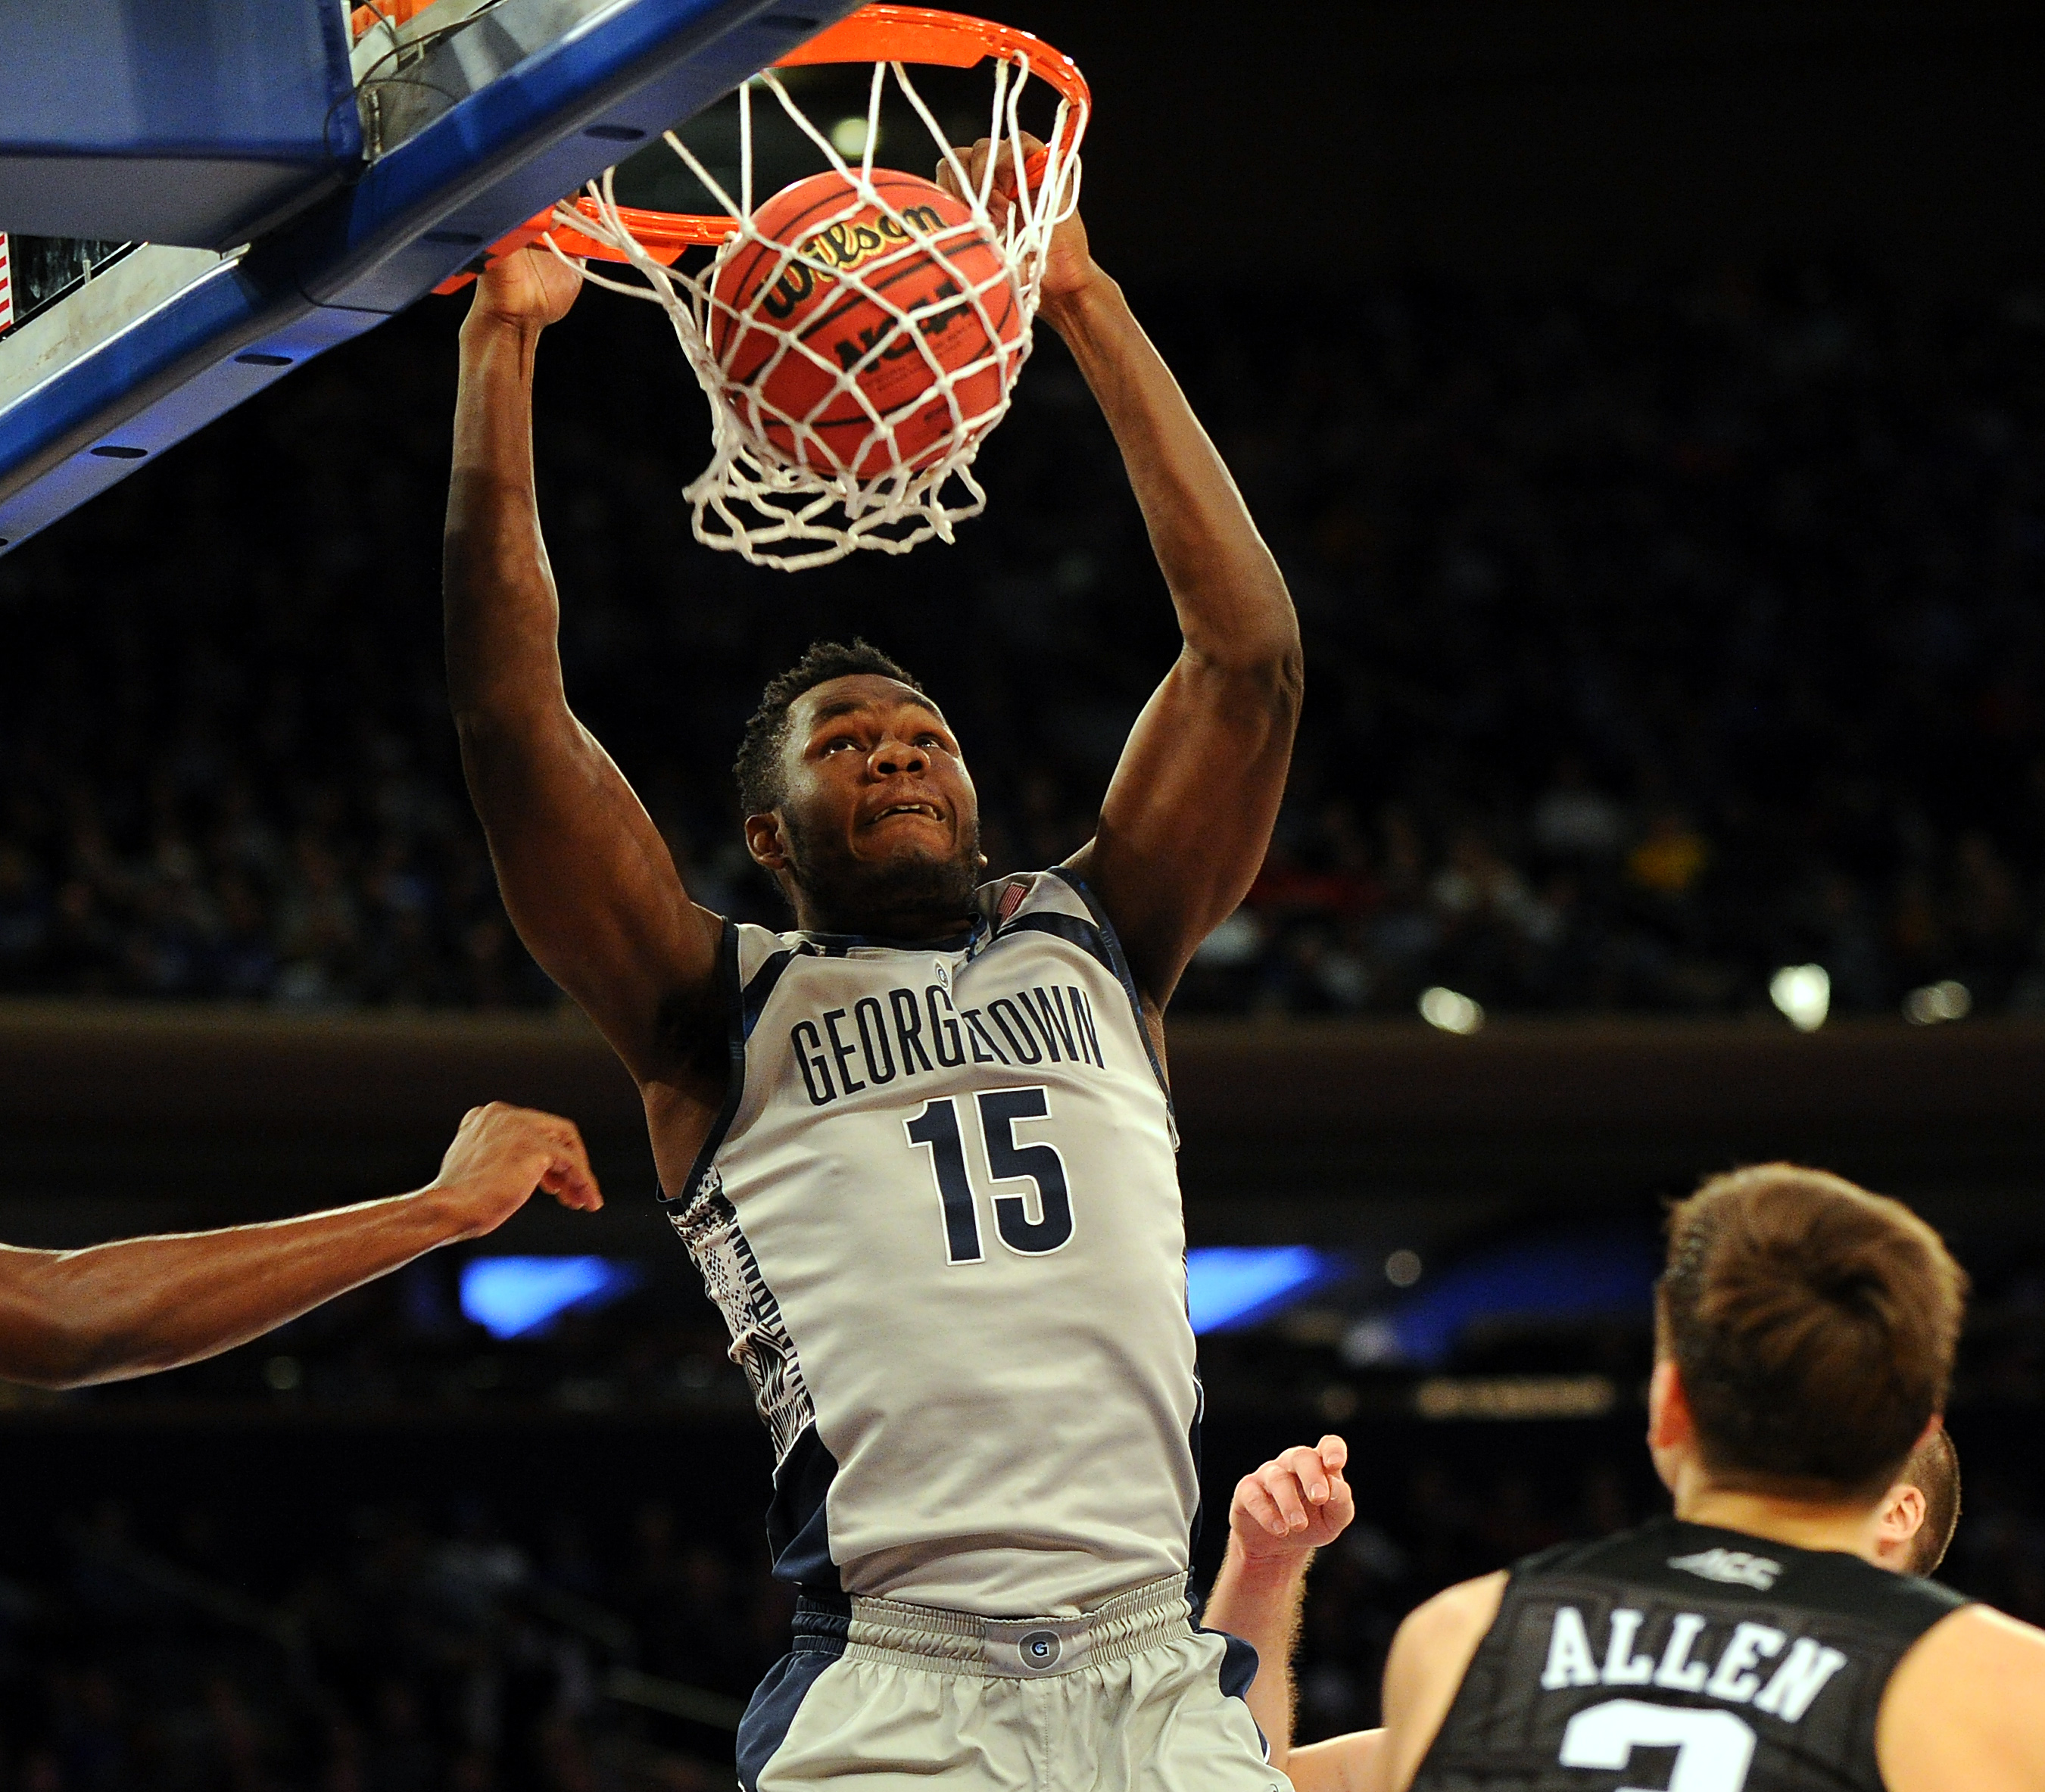 11/22/15 Duke Blue Devils  vs  Georgetown Hoyas  at msg N.Y.C. N.Y.Duke Blue Devils   win   86-84  today   Georgetown Hoyas center Jessie Govan #15  makes a  dunk   in the 2nd  half today photos  by  sportsdaywire